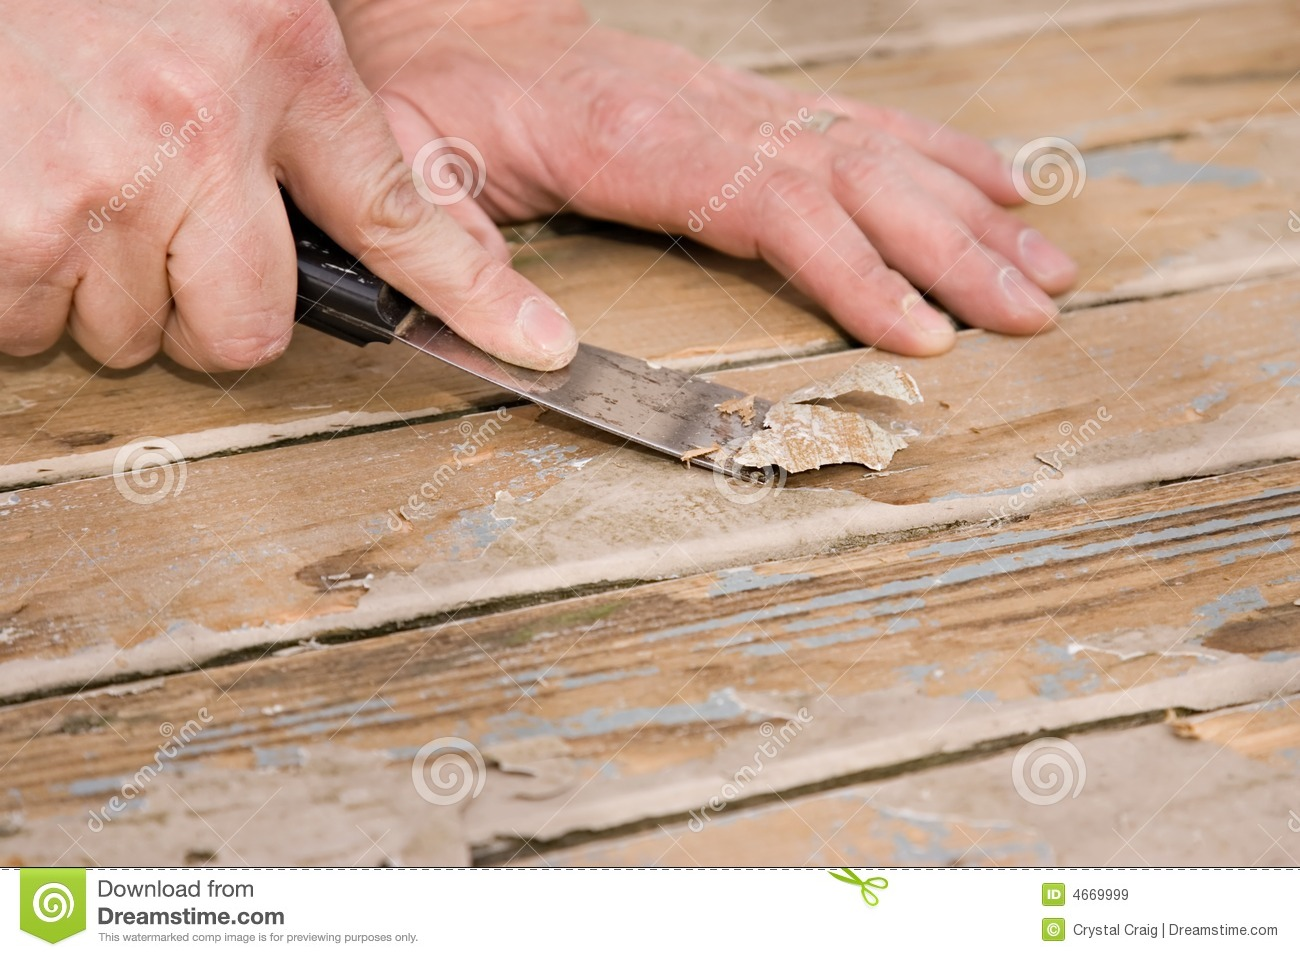 Scraping Paint On A Deck Royalty Free Stock Images - Image: 4669999